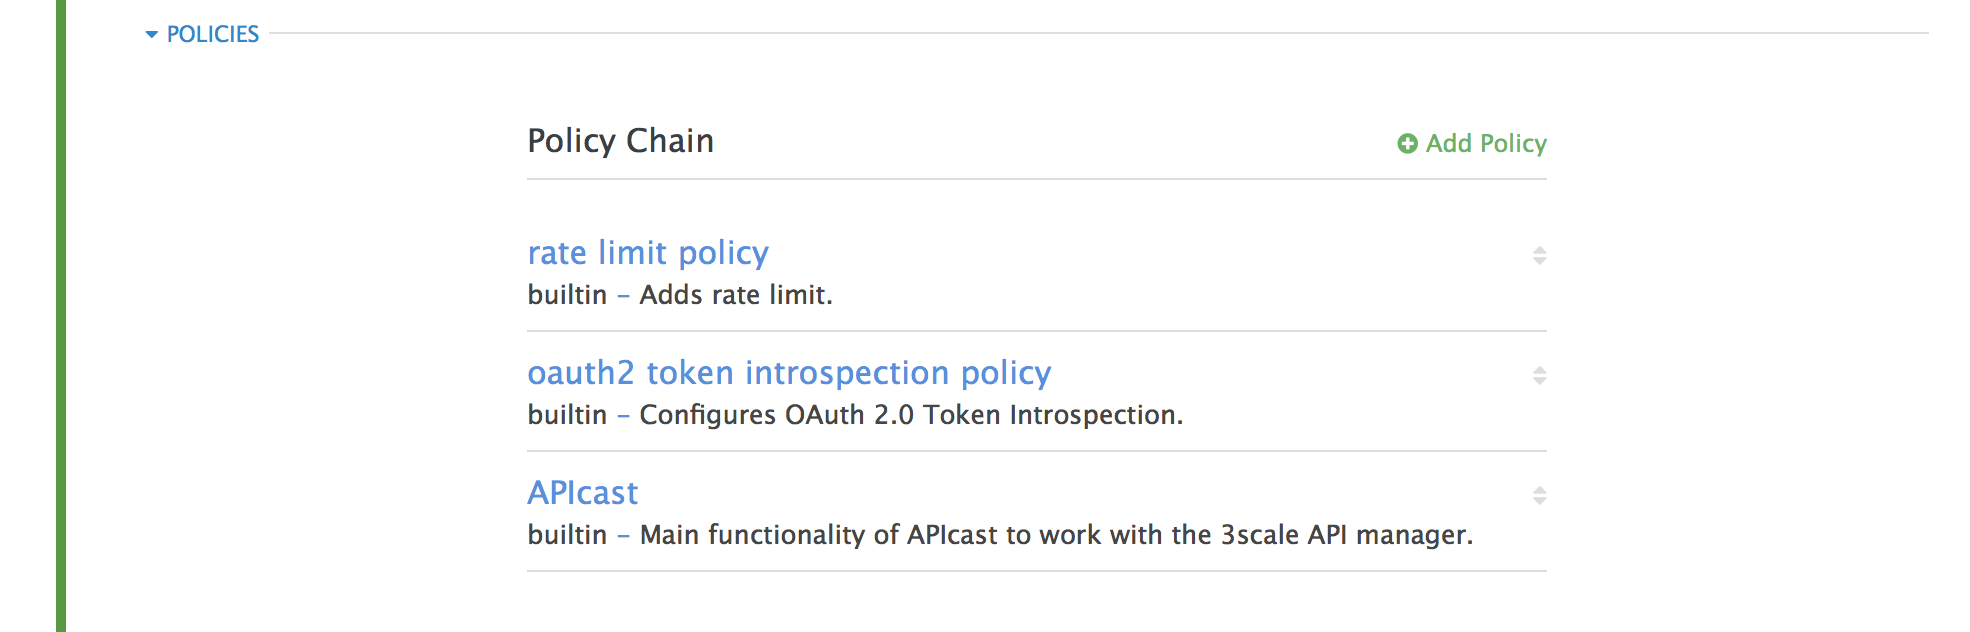 Chapter 6  APIcast Policies Red Hat 3scale API Management